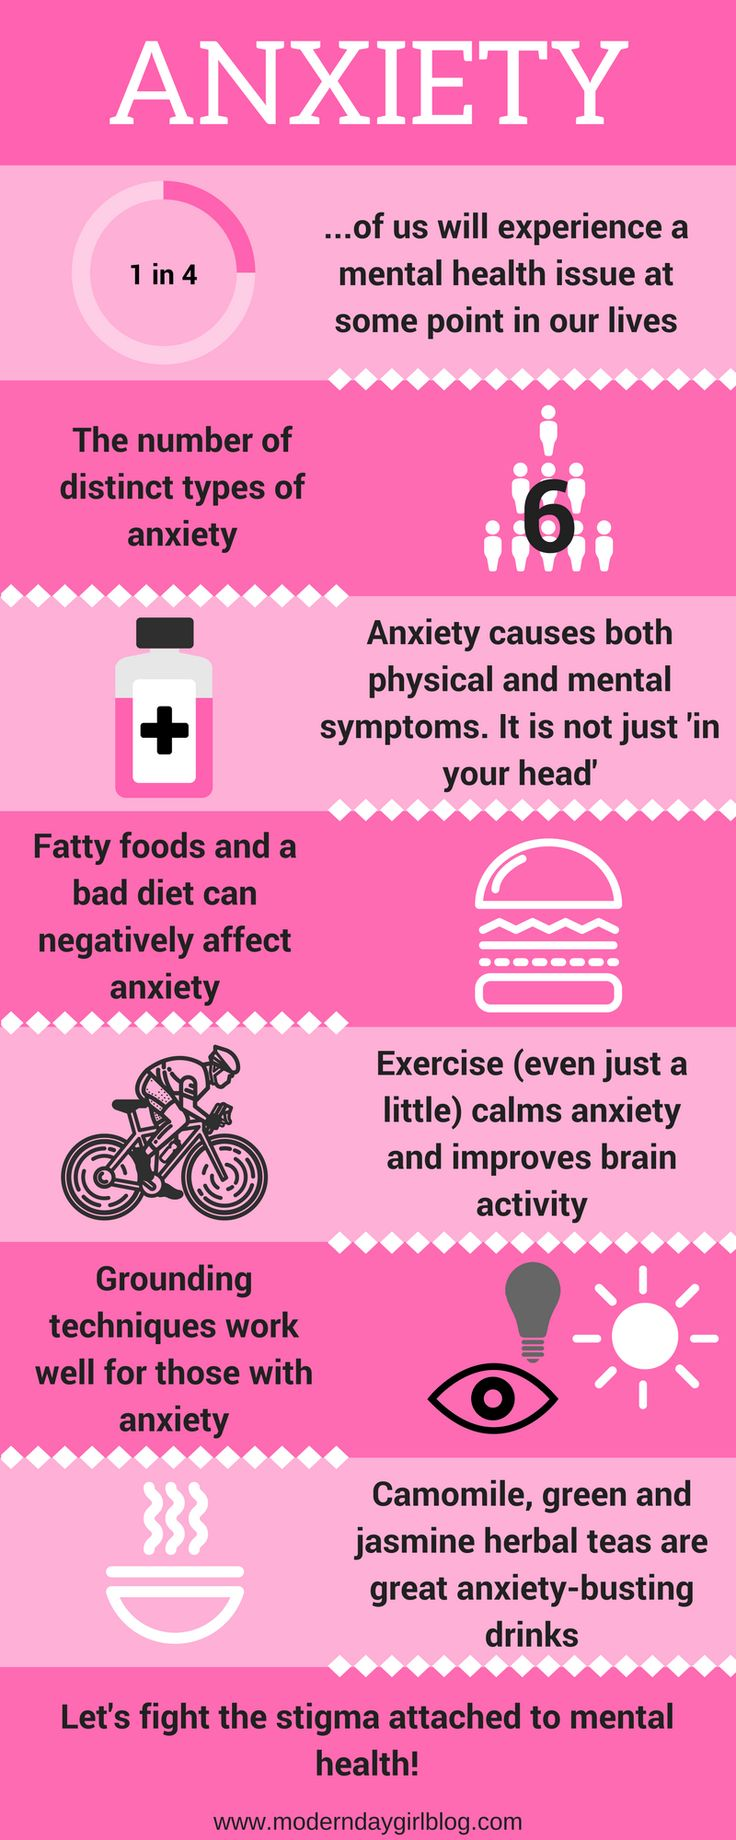 Here's an infographic which shows visually how anxiety affects us all. It includes simple tips and ways to deal with anxiety.